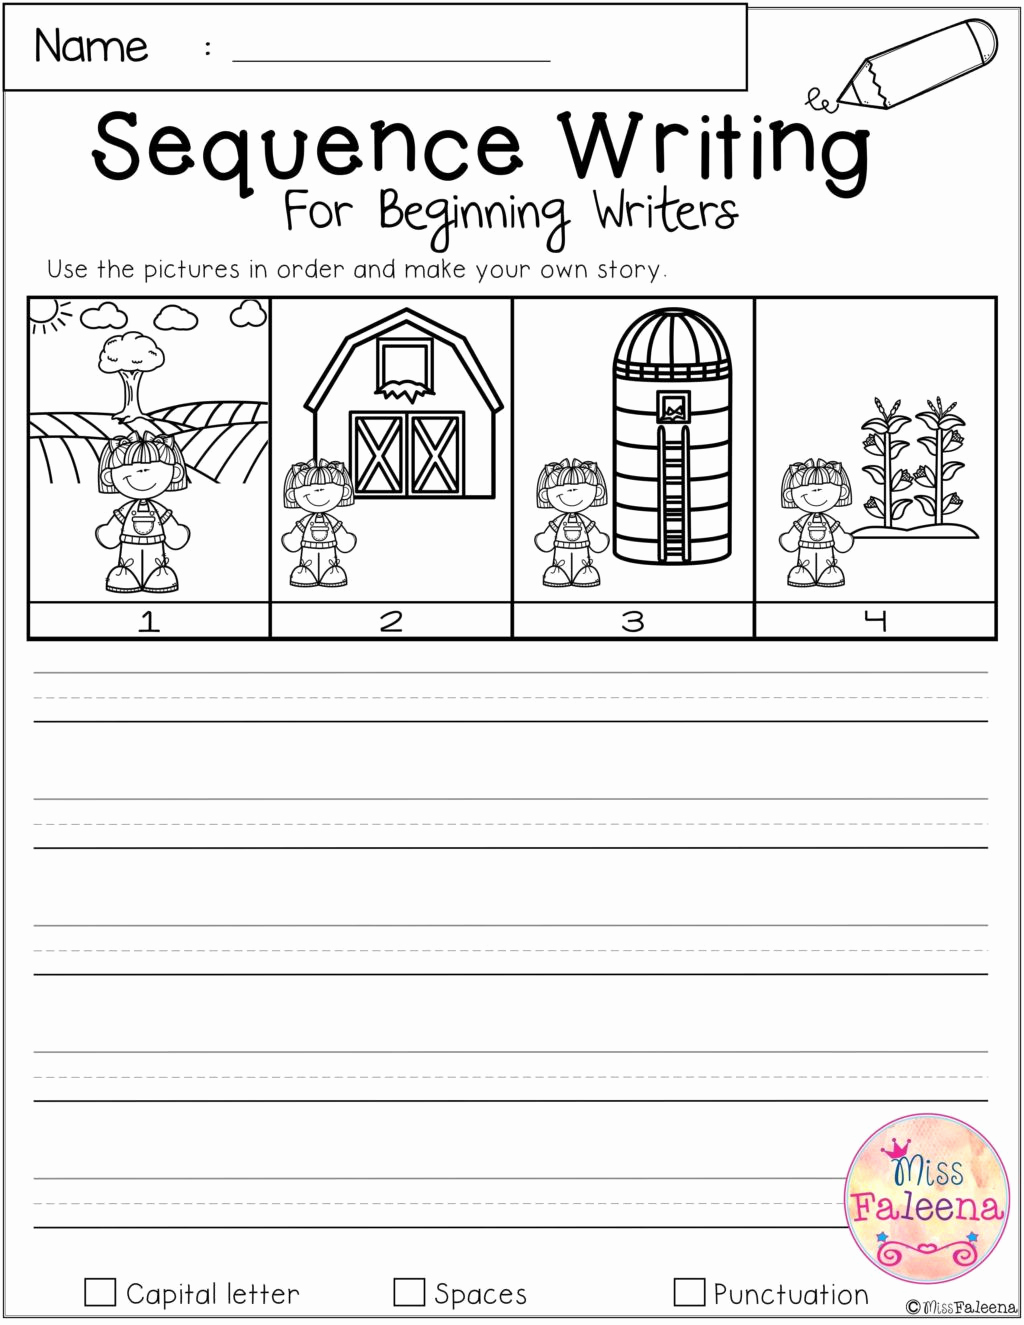 Sequence Worksheets 3rd Grade Lovely 20 Sequence Worksheets 3rd Grade